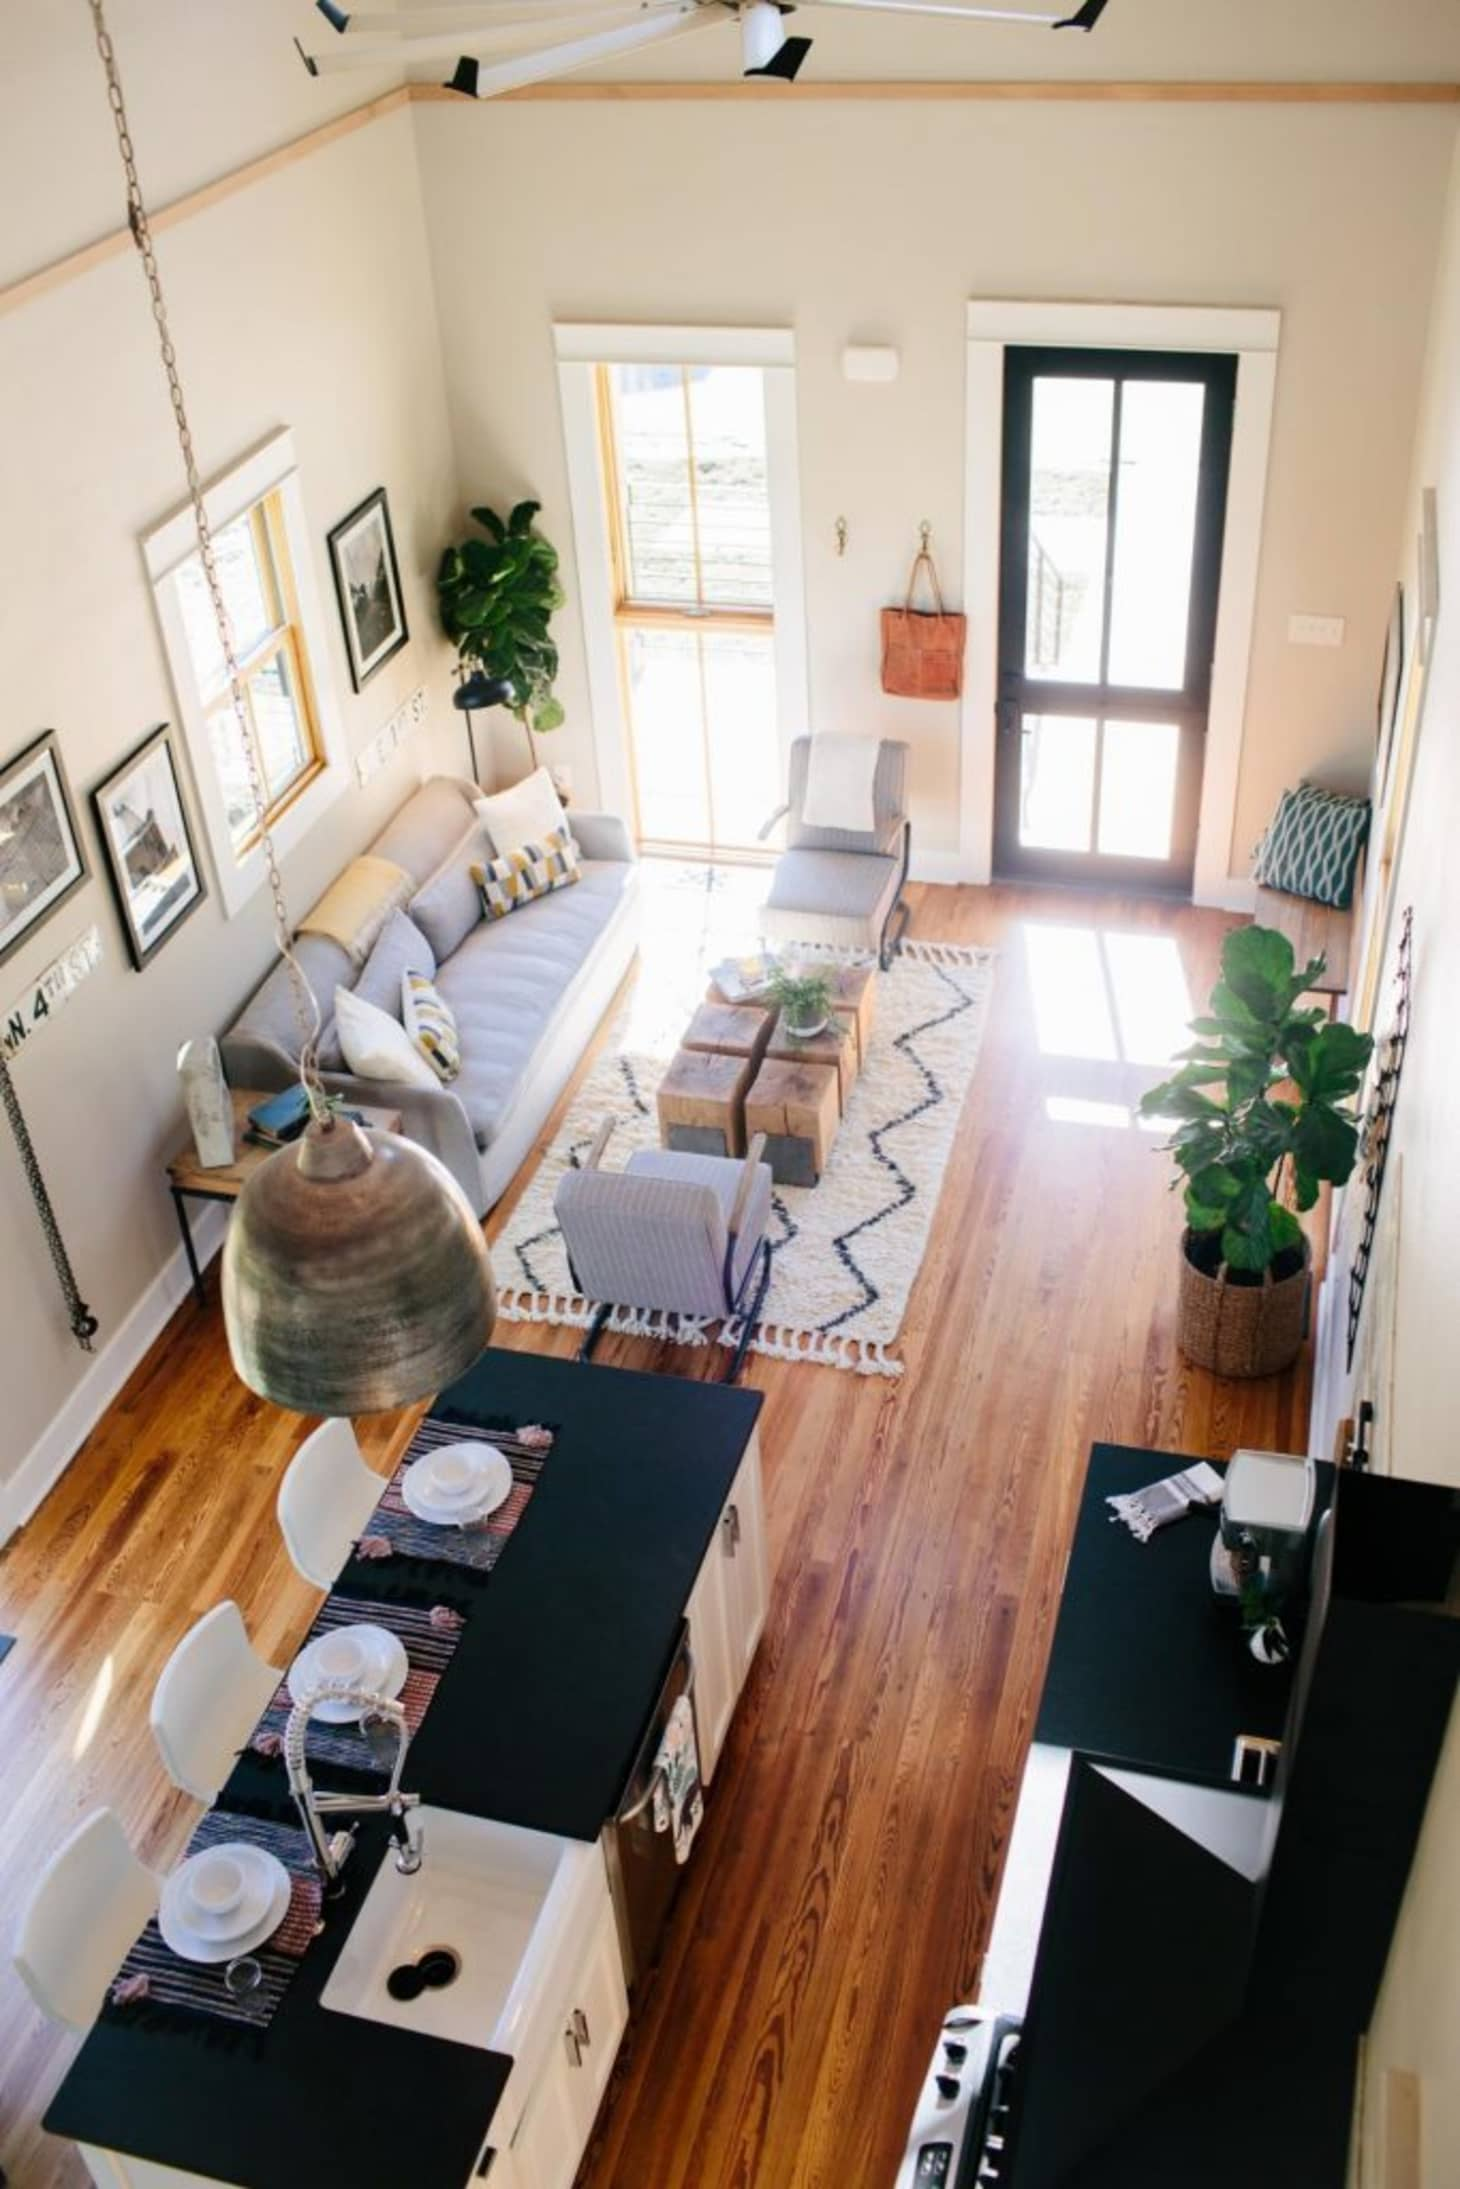 Our Favorite Homes from 'Fixer Upper' | Apartment Therapy on hgtv custom homes, hgtv contemporary homes, hgtv victorian homes, hgtv rental homes, hgtv log cabin homes, hgtv waterfront homes, hgtv ranch homes, hgtv home improvement shows hosts, hgtv barn homes,